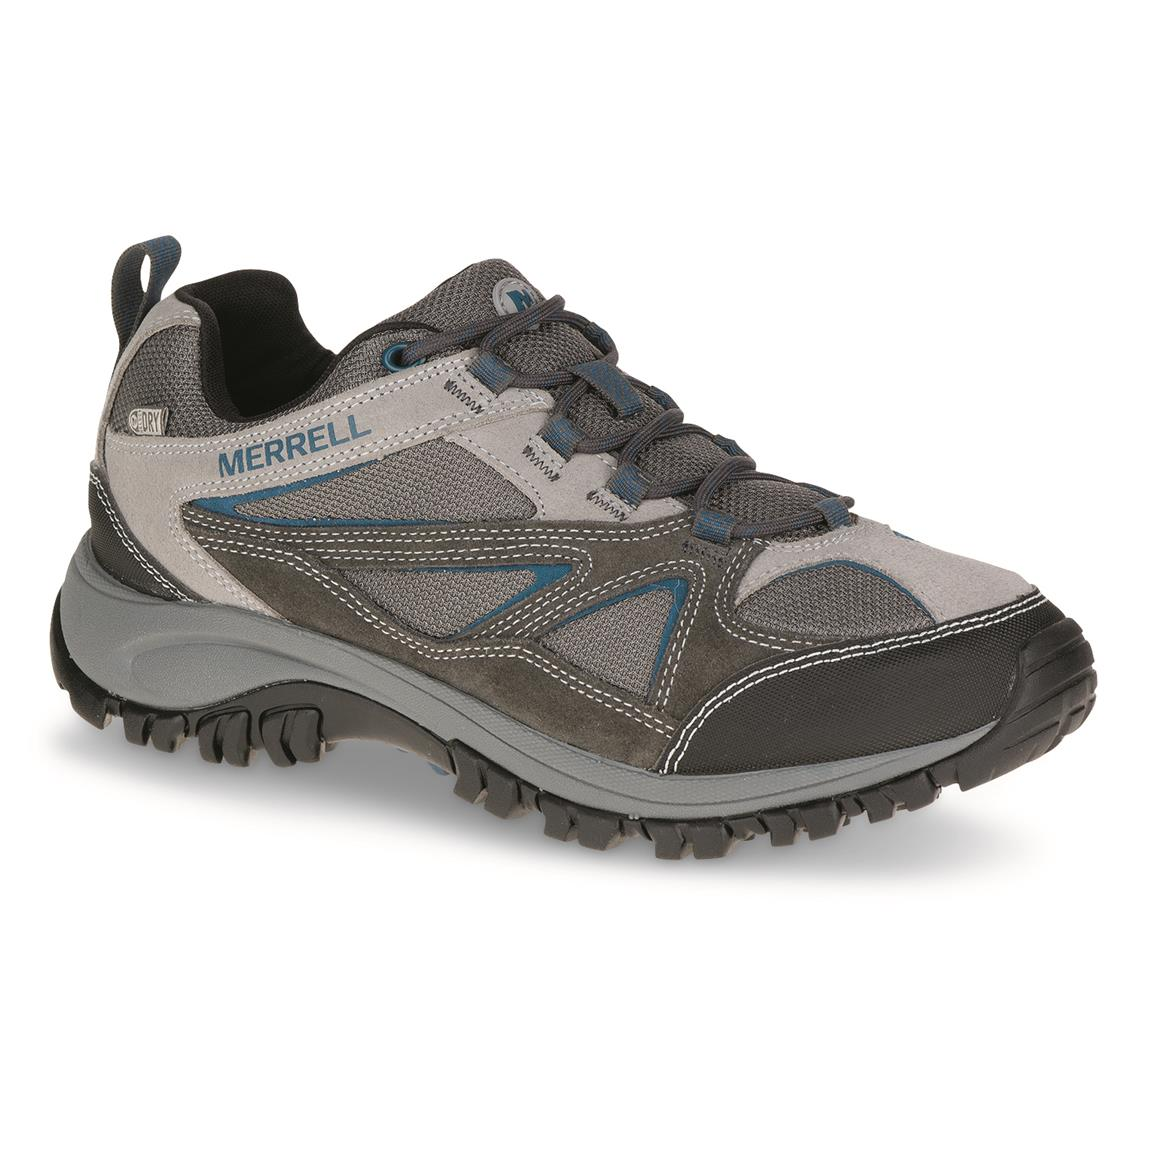 Merrell Men's Phoenix Bluff Waterproof Hiking Shoes, Gray